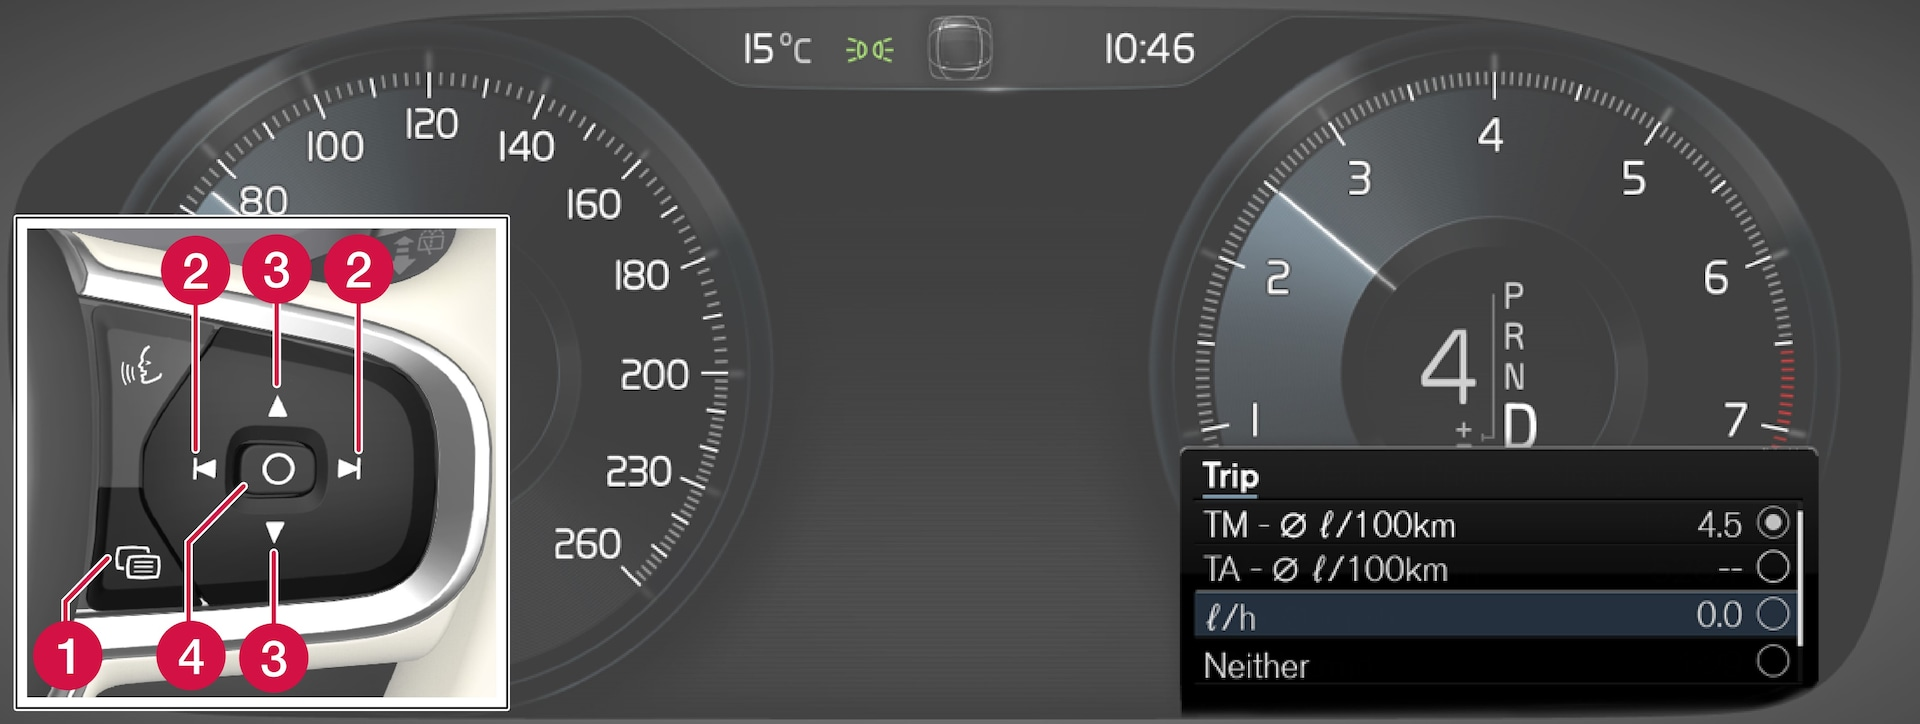 P5-1717-ALL-Trip computer navigation in driver display